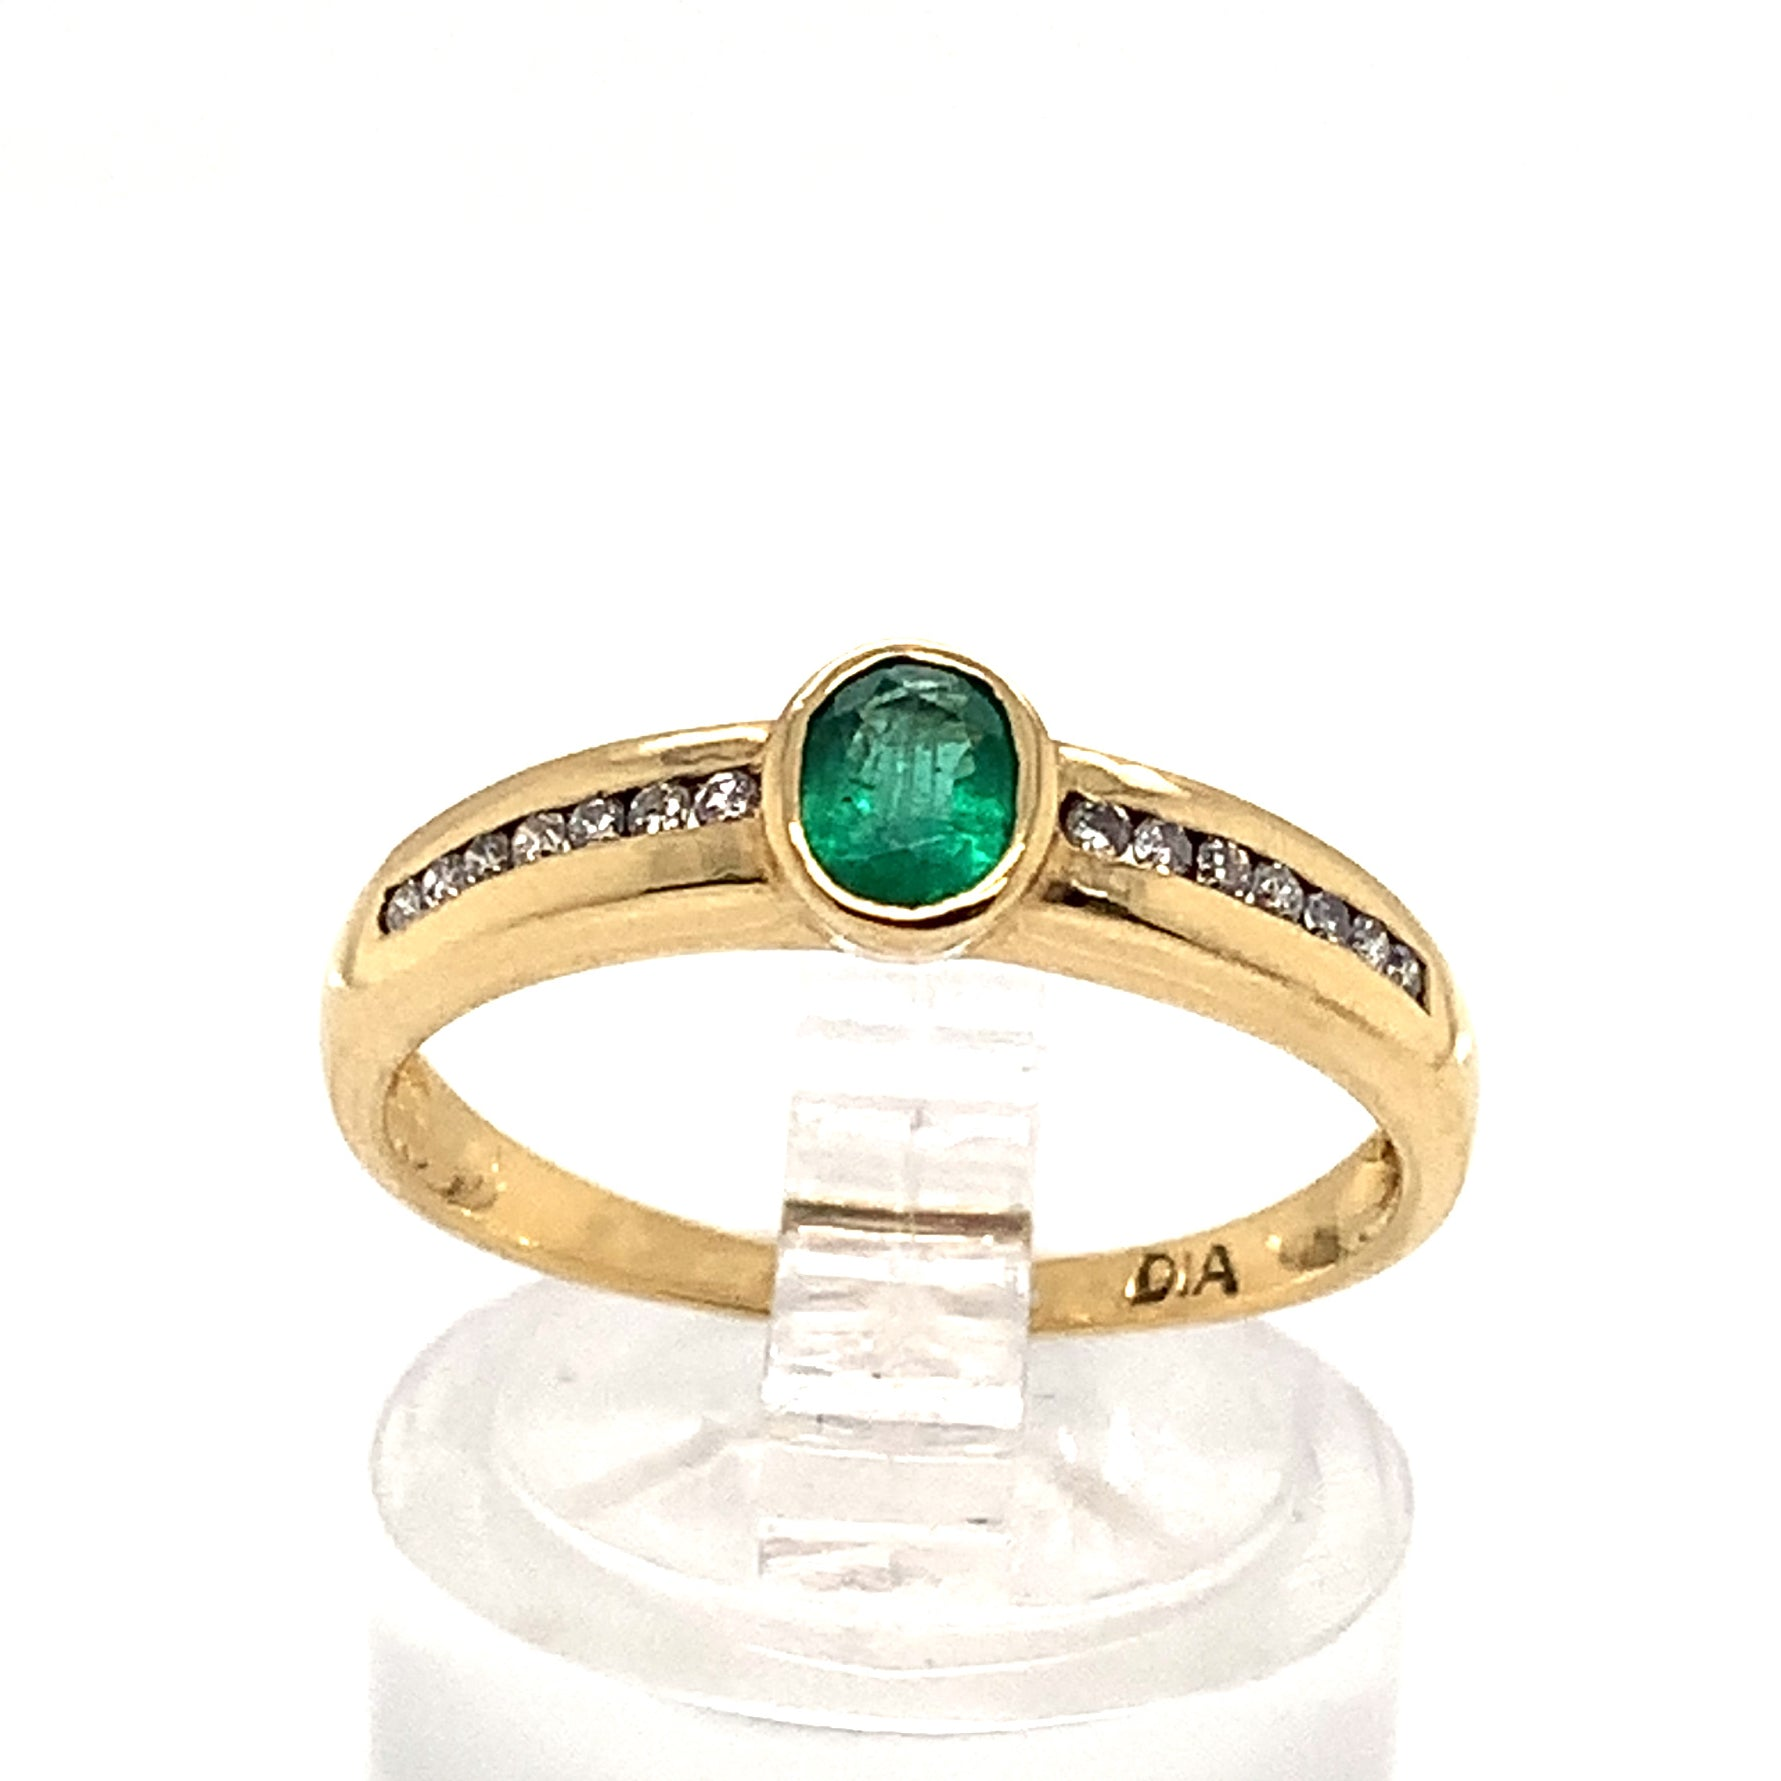 Emerald Ring with Diamond set shoulders